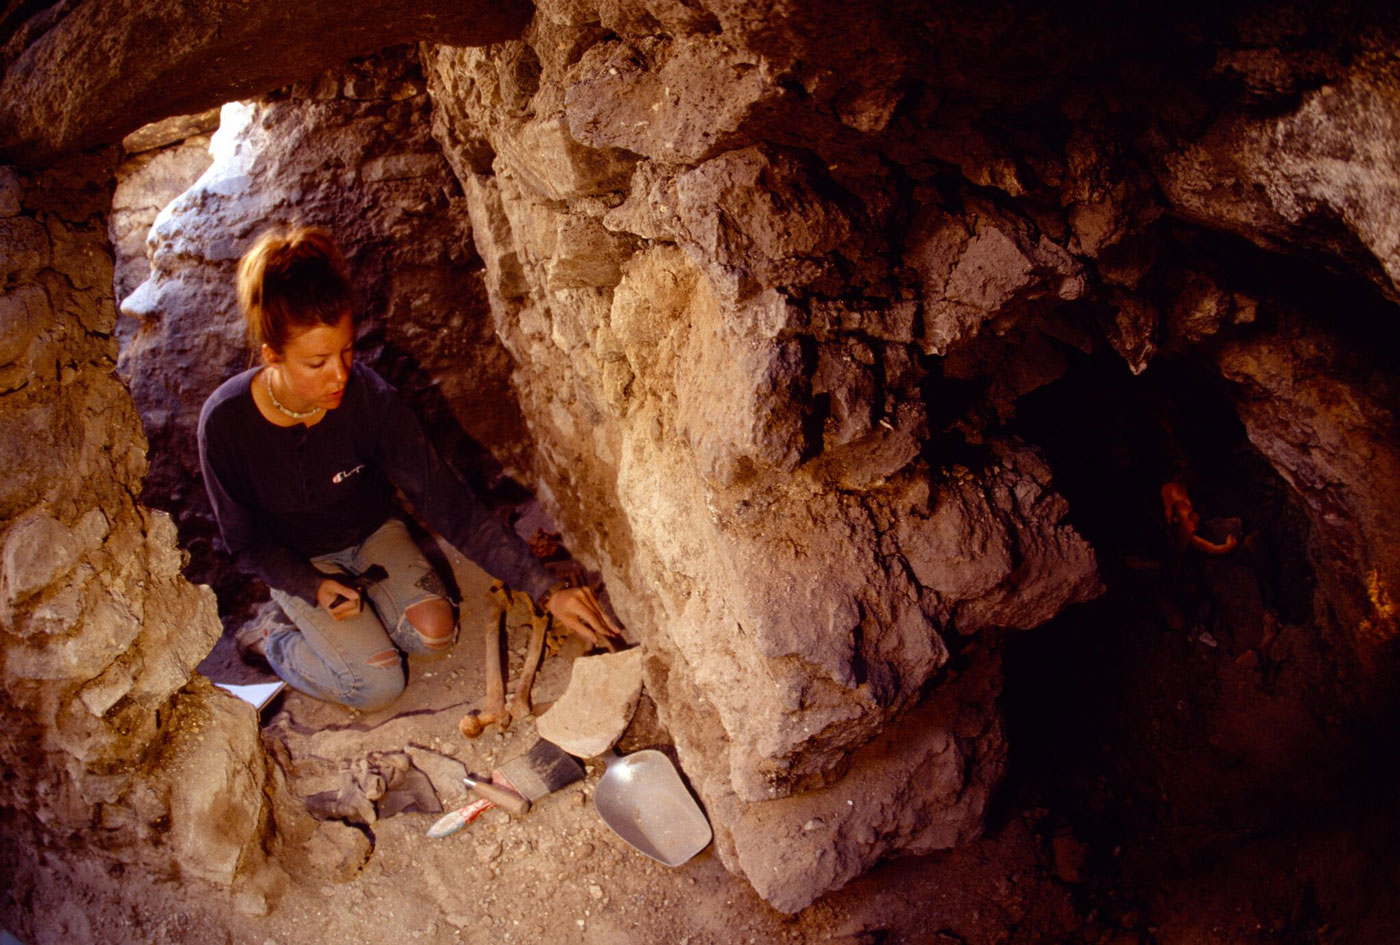 A team member works at excavating a Wari site in Conchopata, Peru.